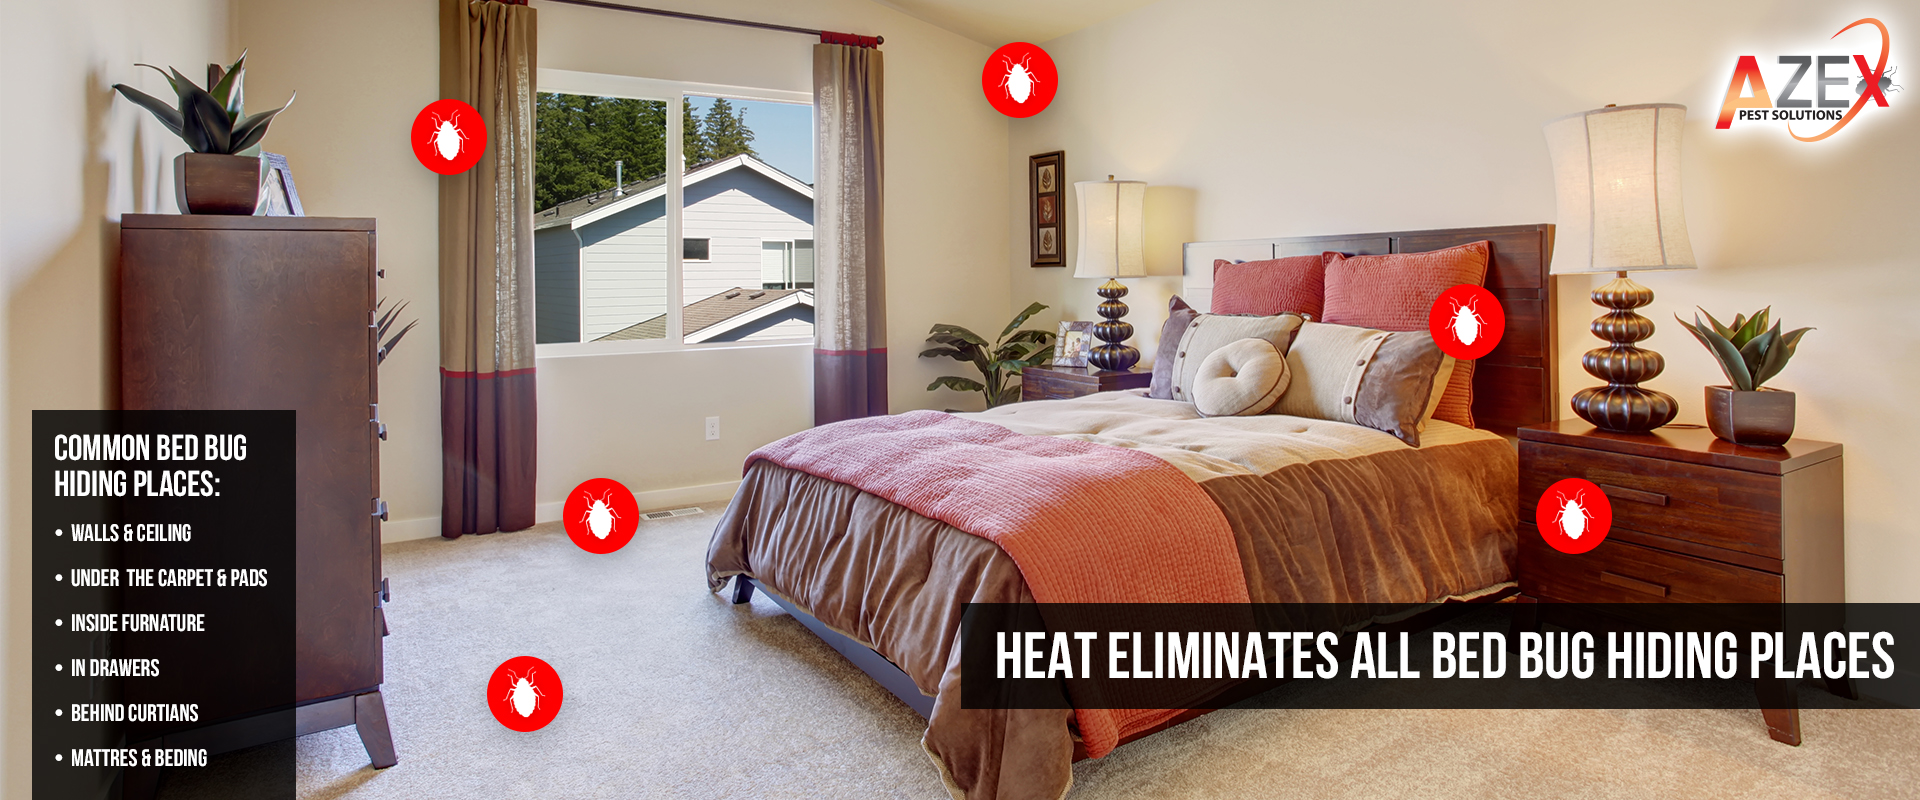 Bed Bug Heat Treatments Azex Pest Solutions Pest Bed Bug